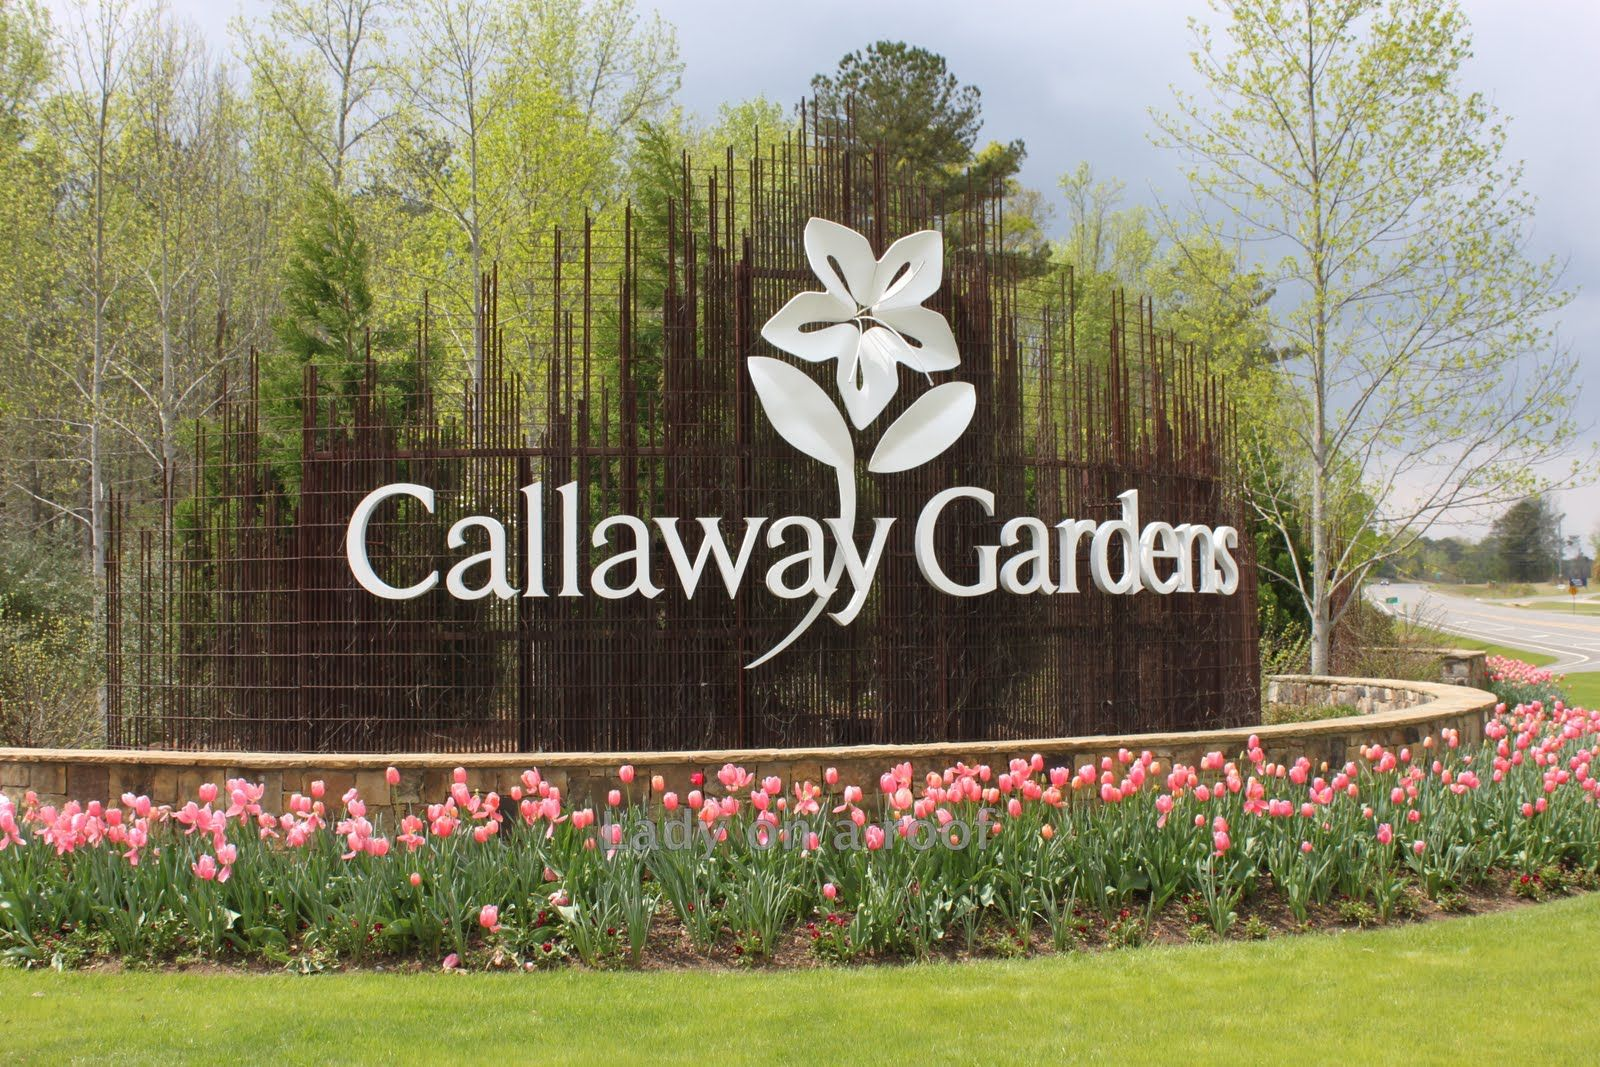 1000 images about Callaway Gardens 2016 on Pinterest Gardens